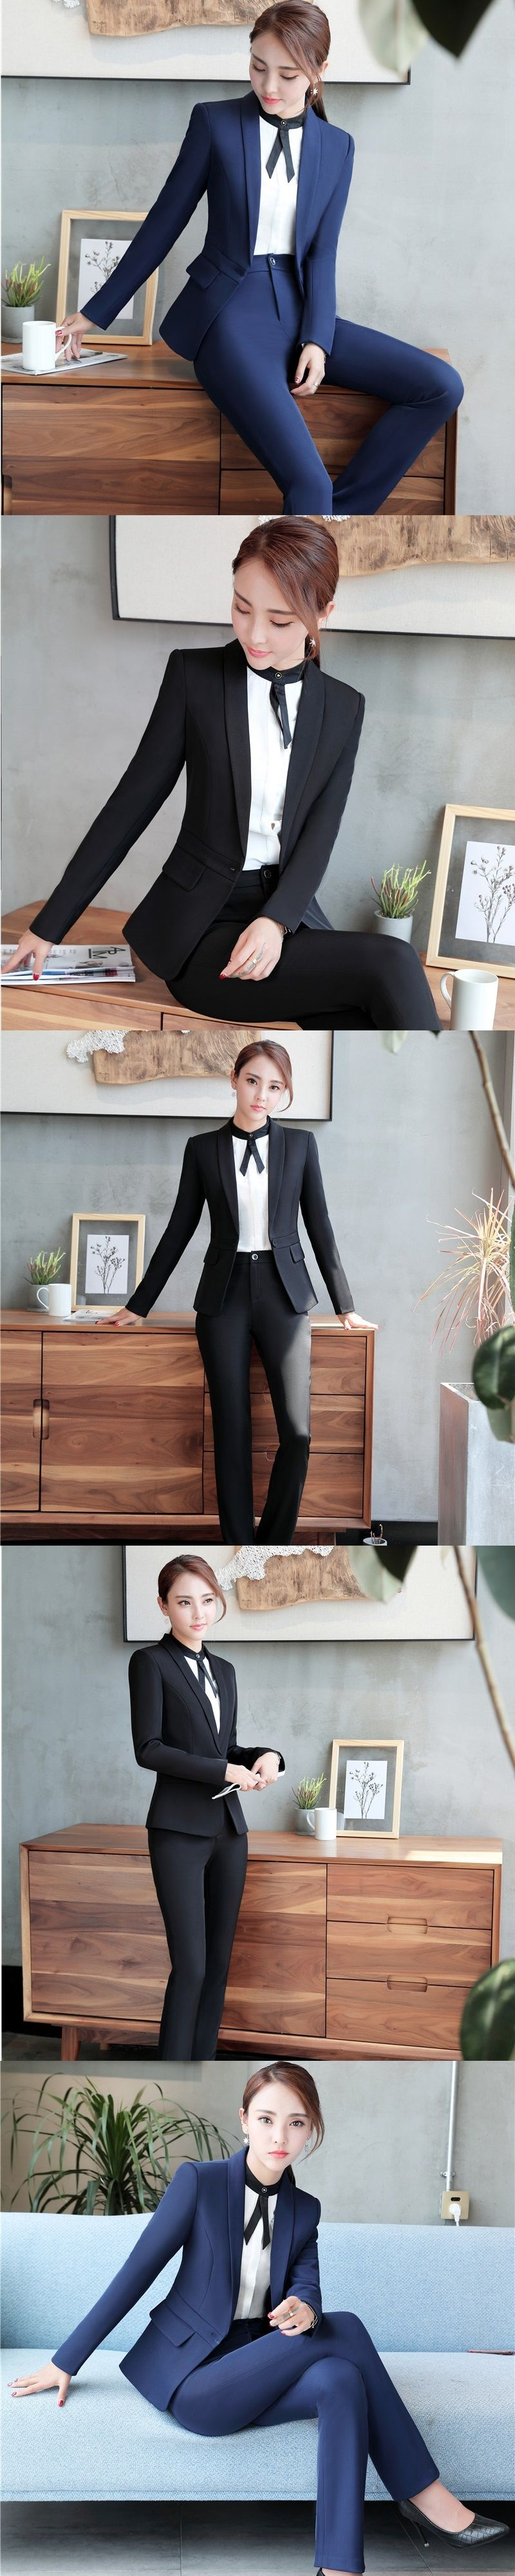 suits office. Elegant Blue Formal Uniform Design Pantsuits With Jackets And Pants For Ladies Office Suits Trousers N